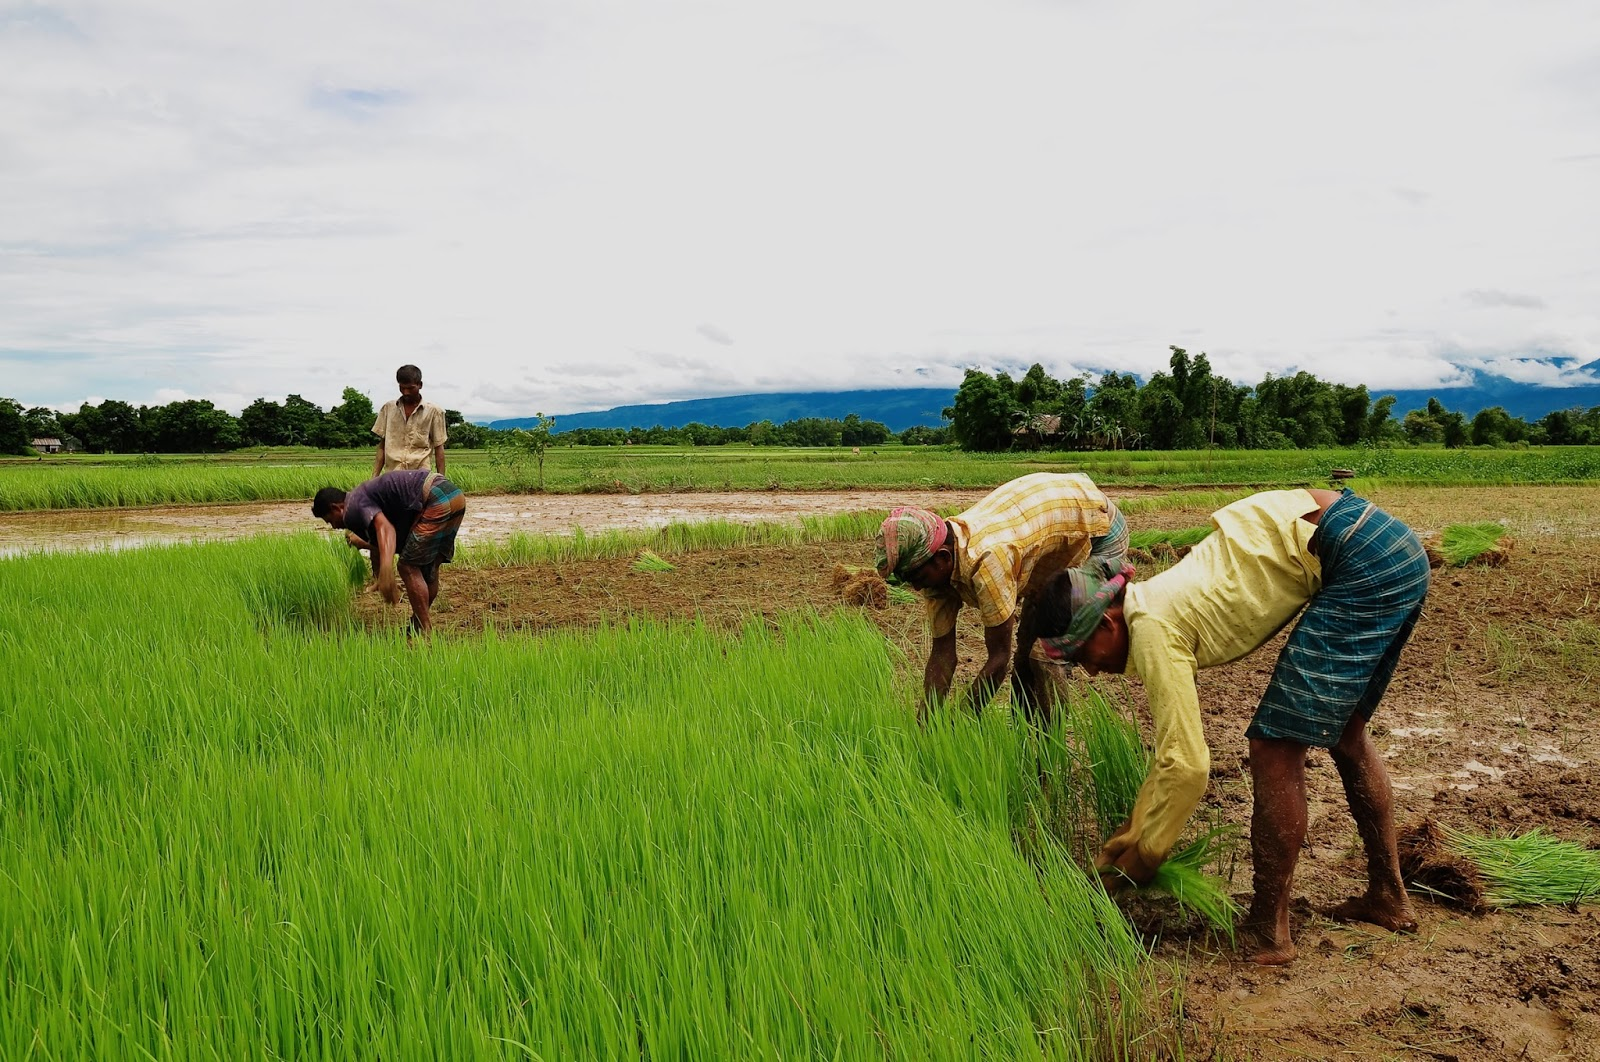 importance of agriculture in economy essay 3 table of contents the economic importance of agriculture for sustainable development and poverty reduction: findings from a case study of ghana5.